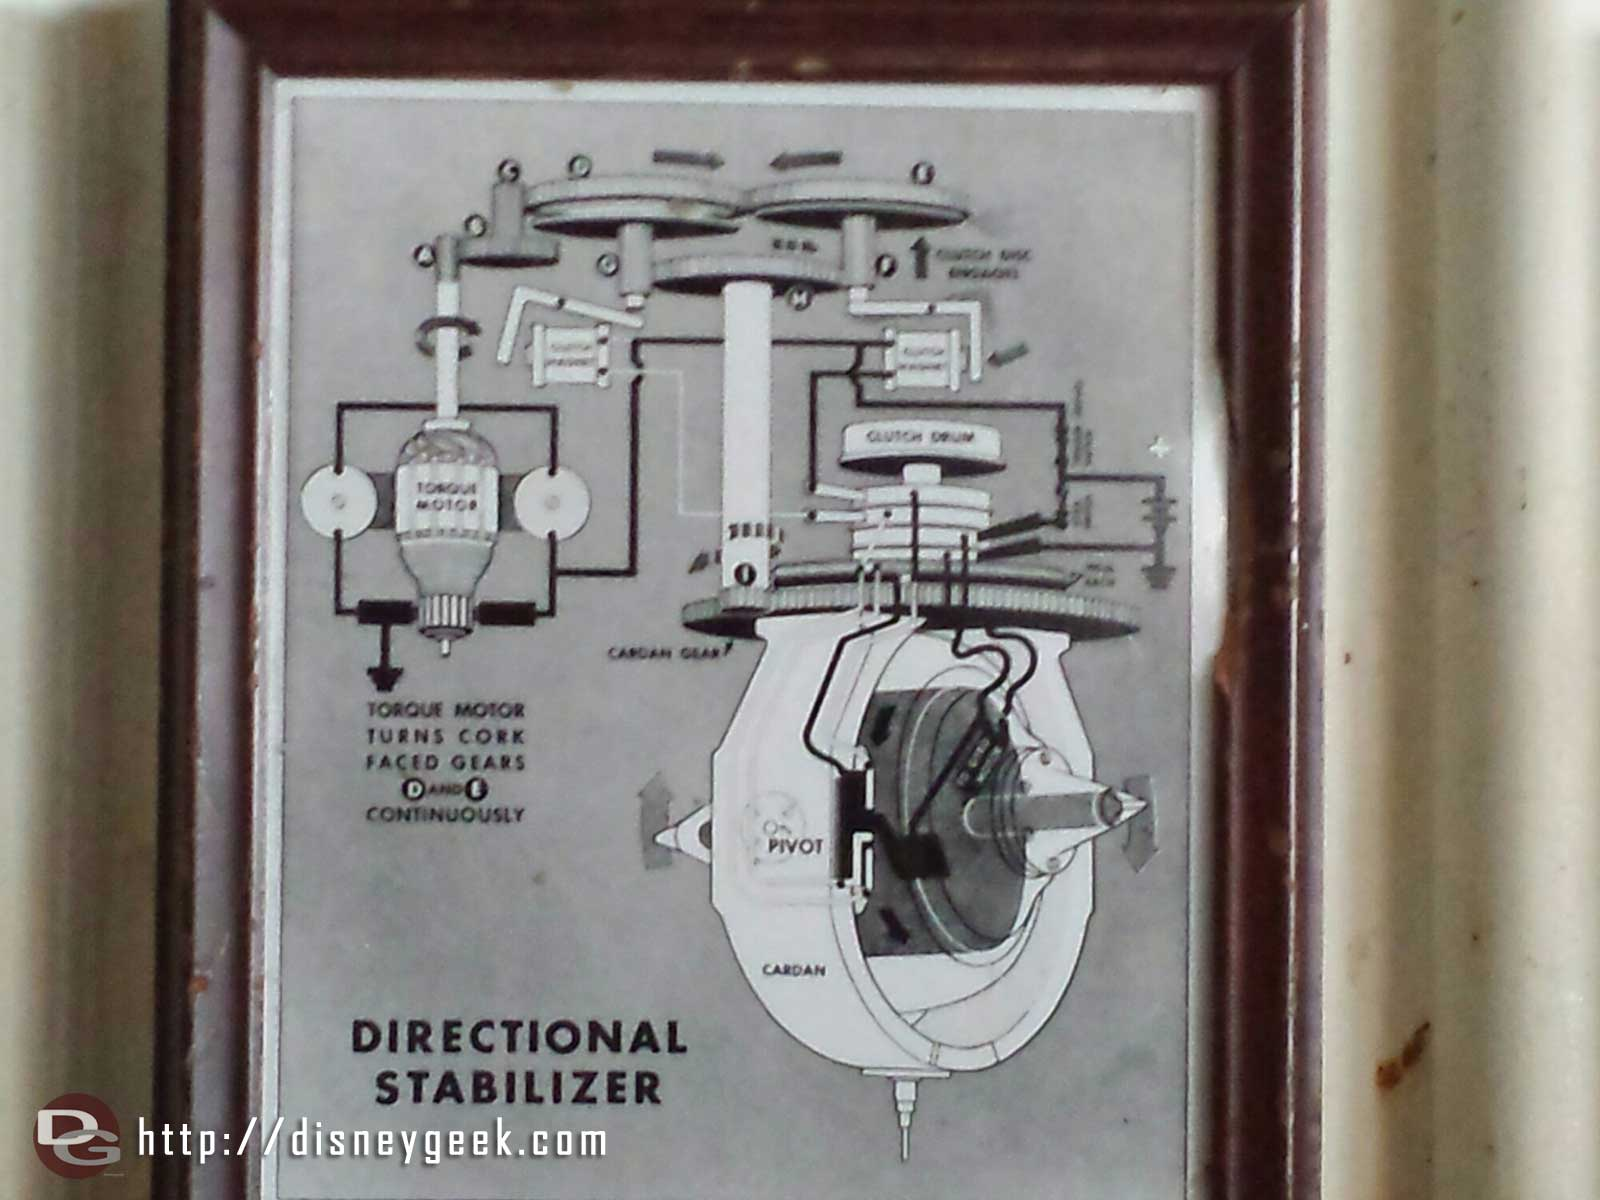 A Directional Stabilizer diagram in Taste Pilots